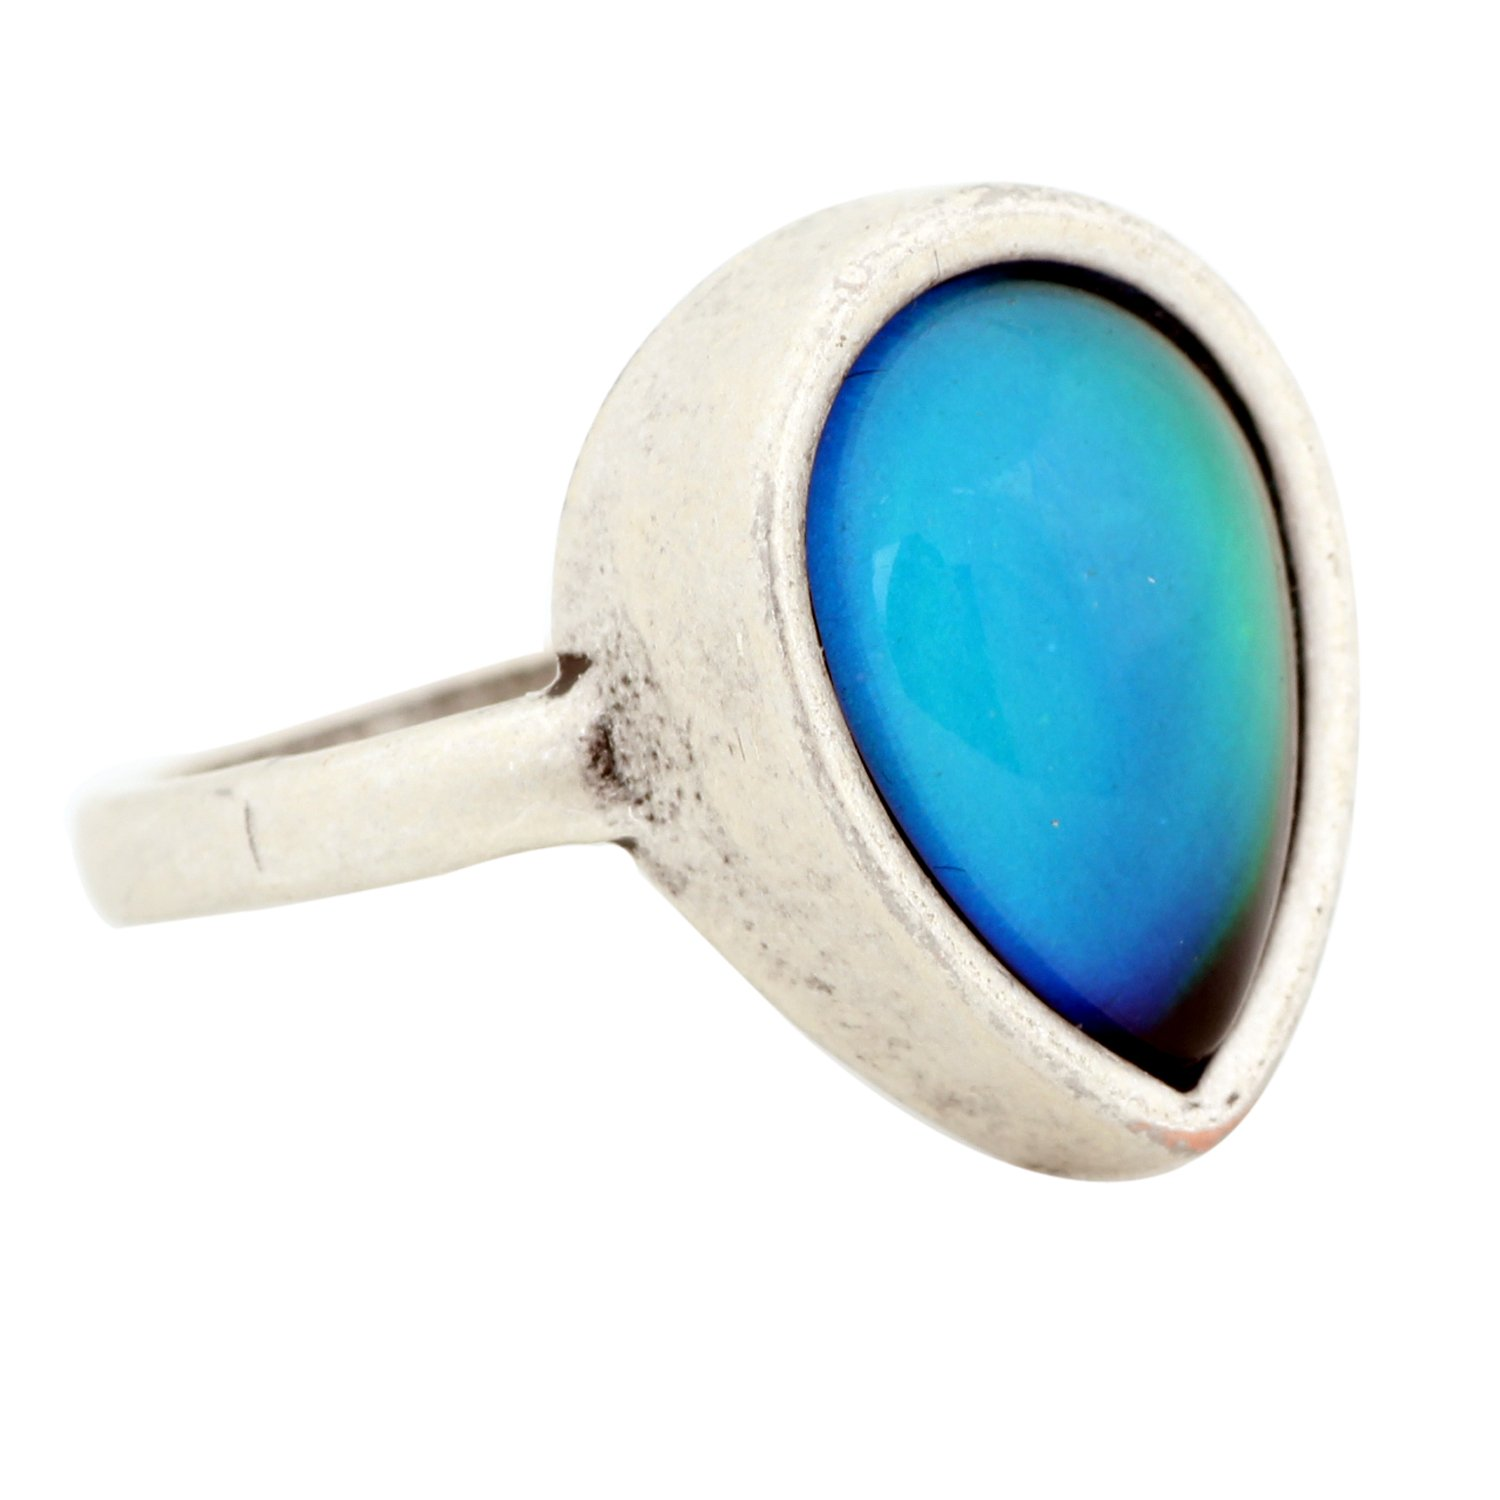 Mojo Antique Sterling Silver Plated Ring With Water Drop Stone Color Change Mood Rings MJ-RS047